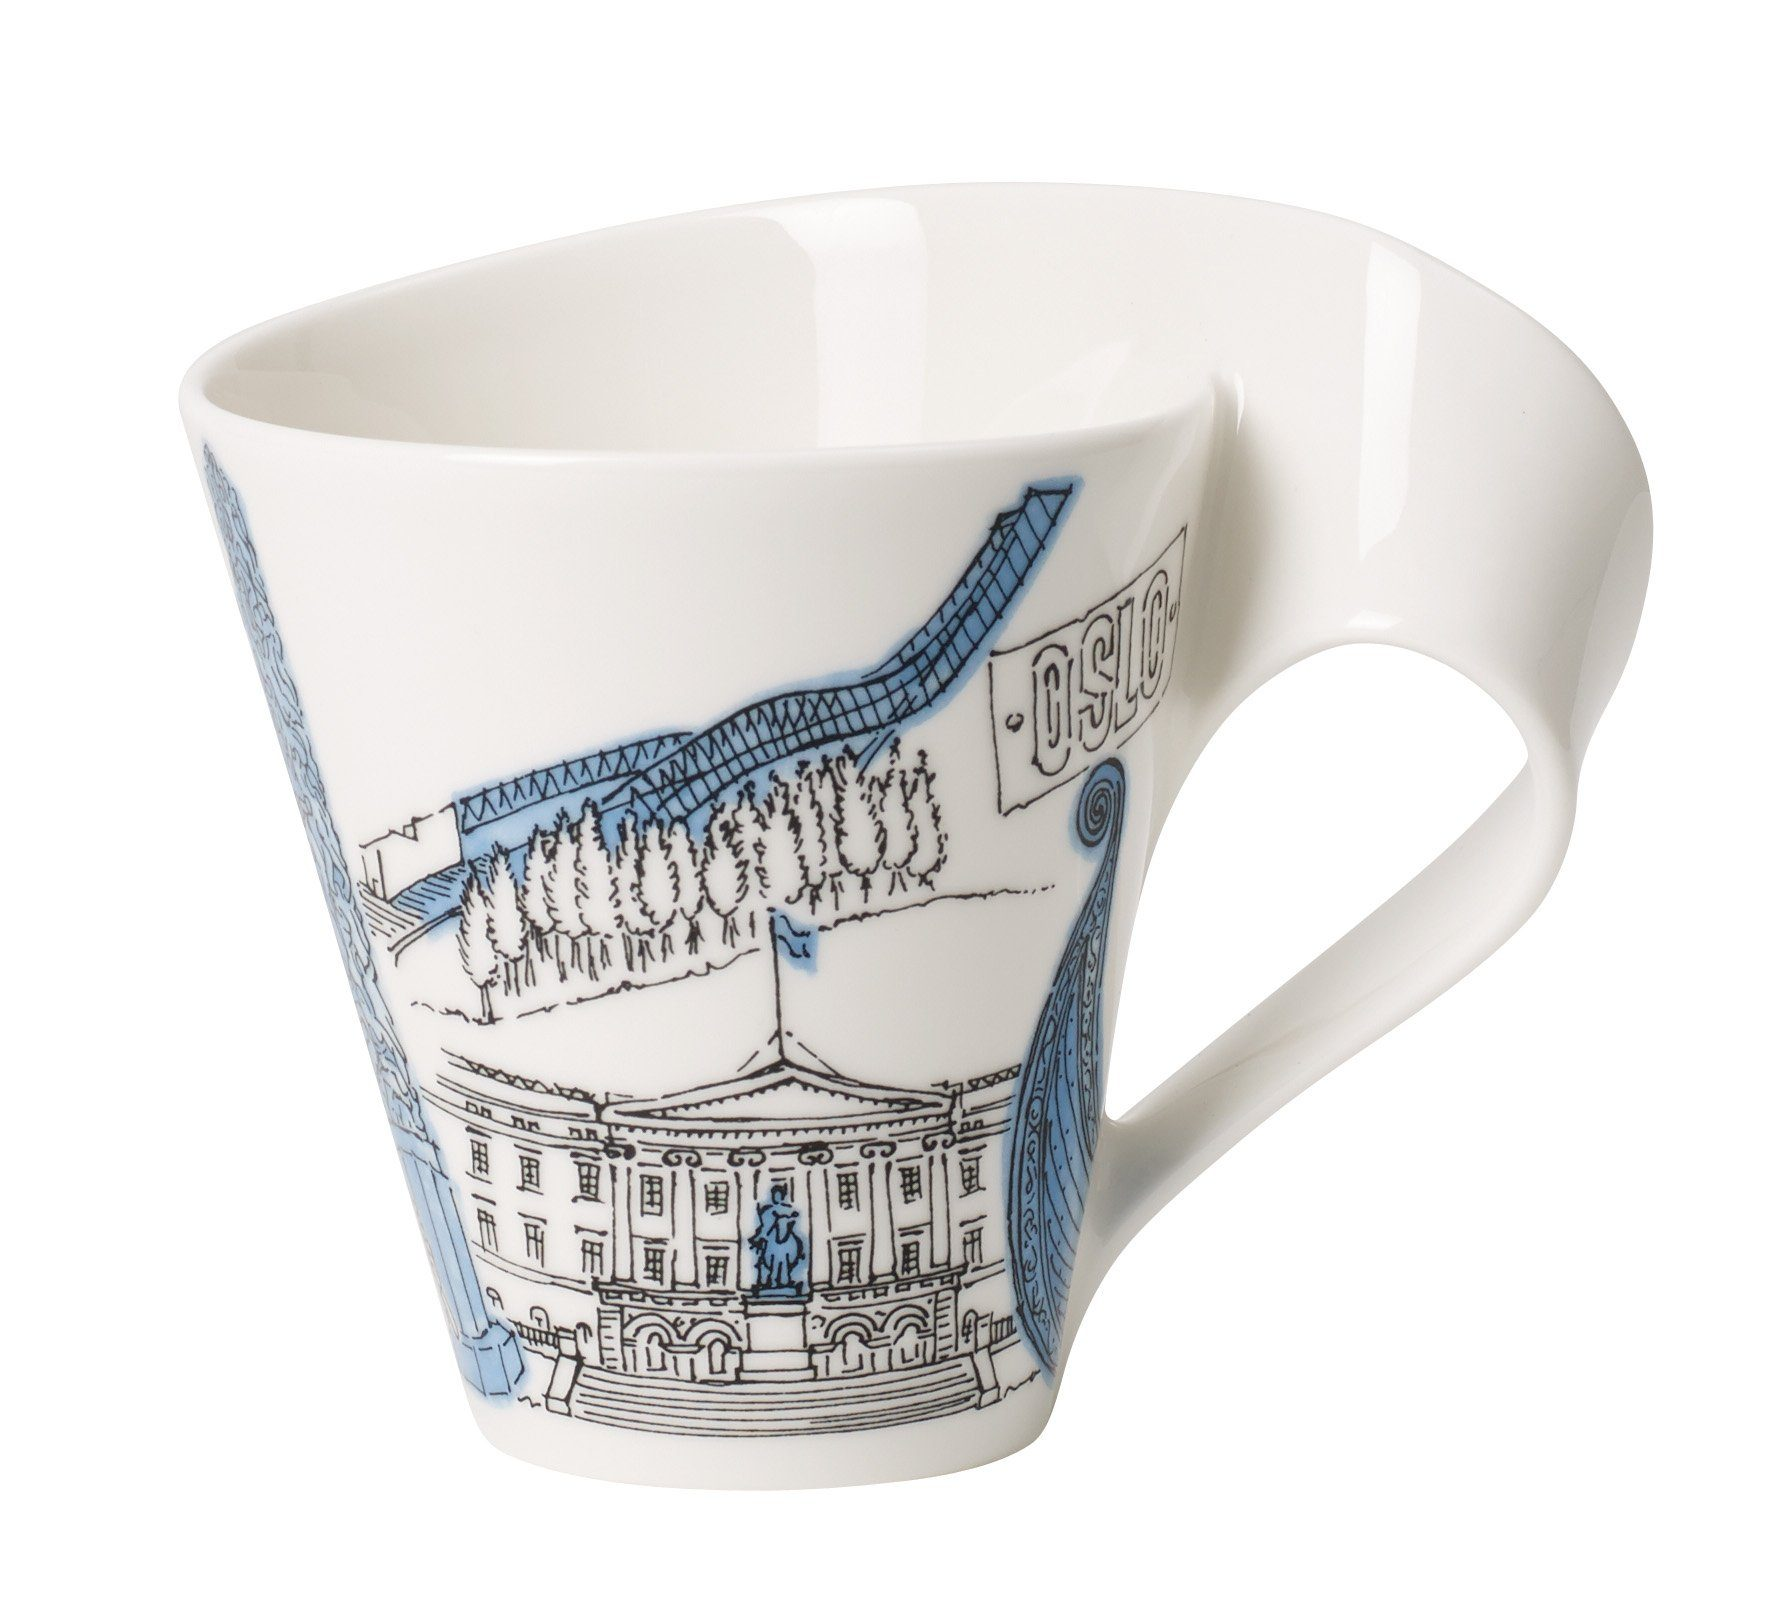 Villeroy & Boch Kaffeebecher Oslo »Cities of the World«